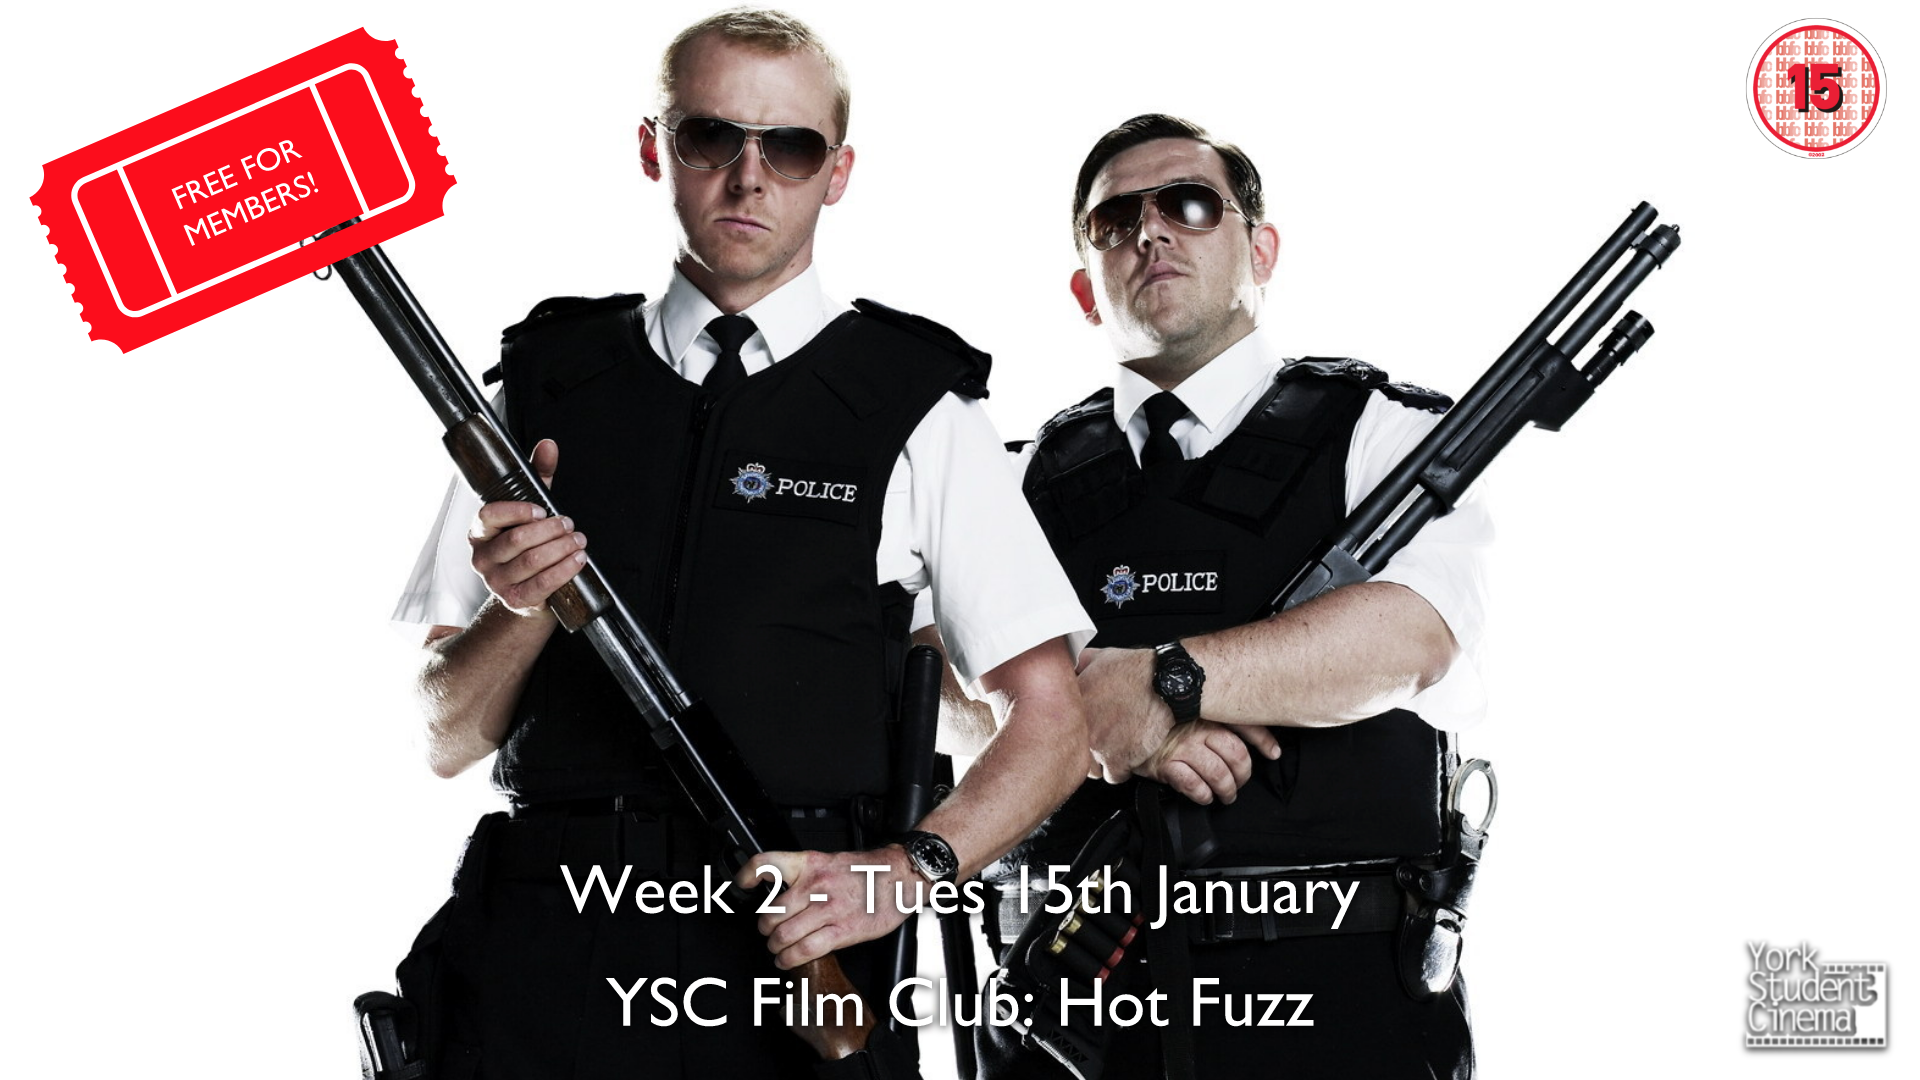 YSC Film Club: Hot Fuzz